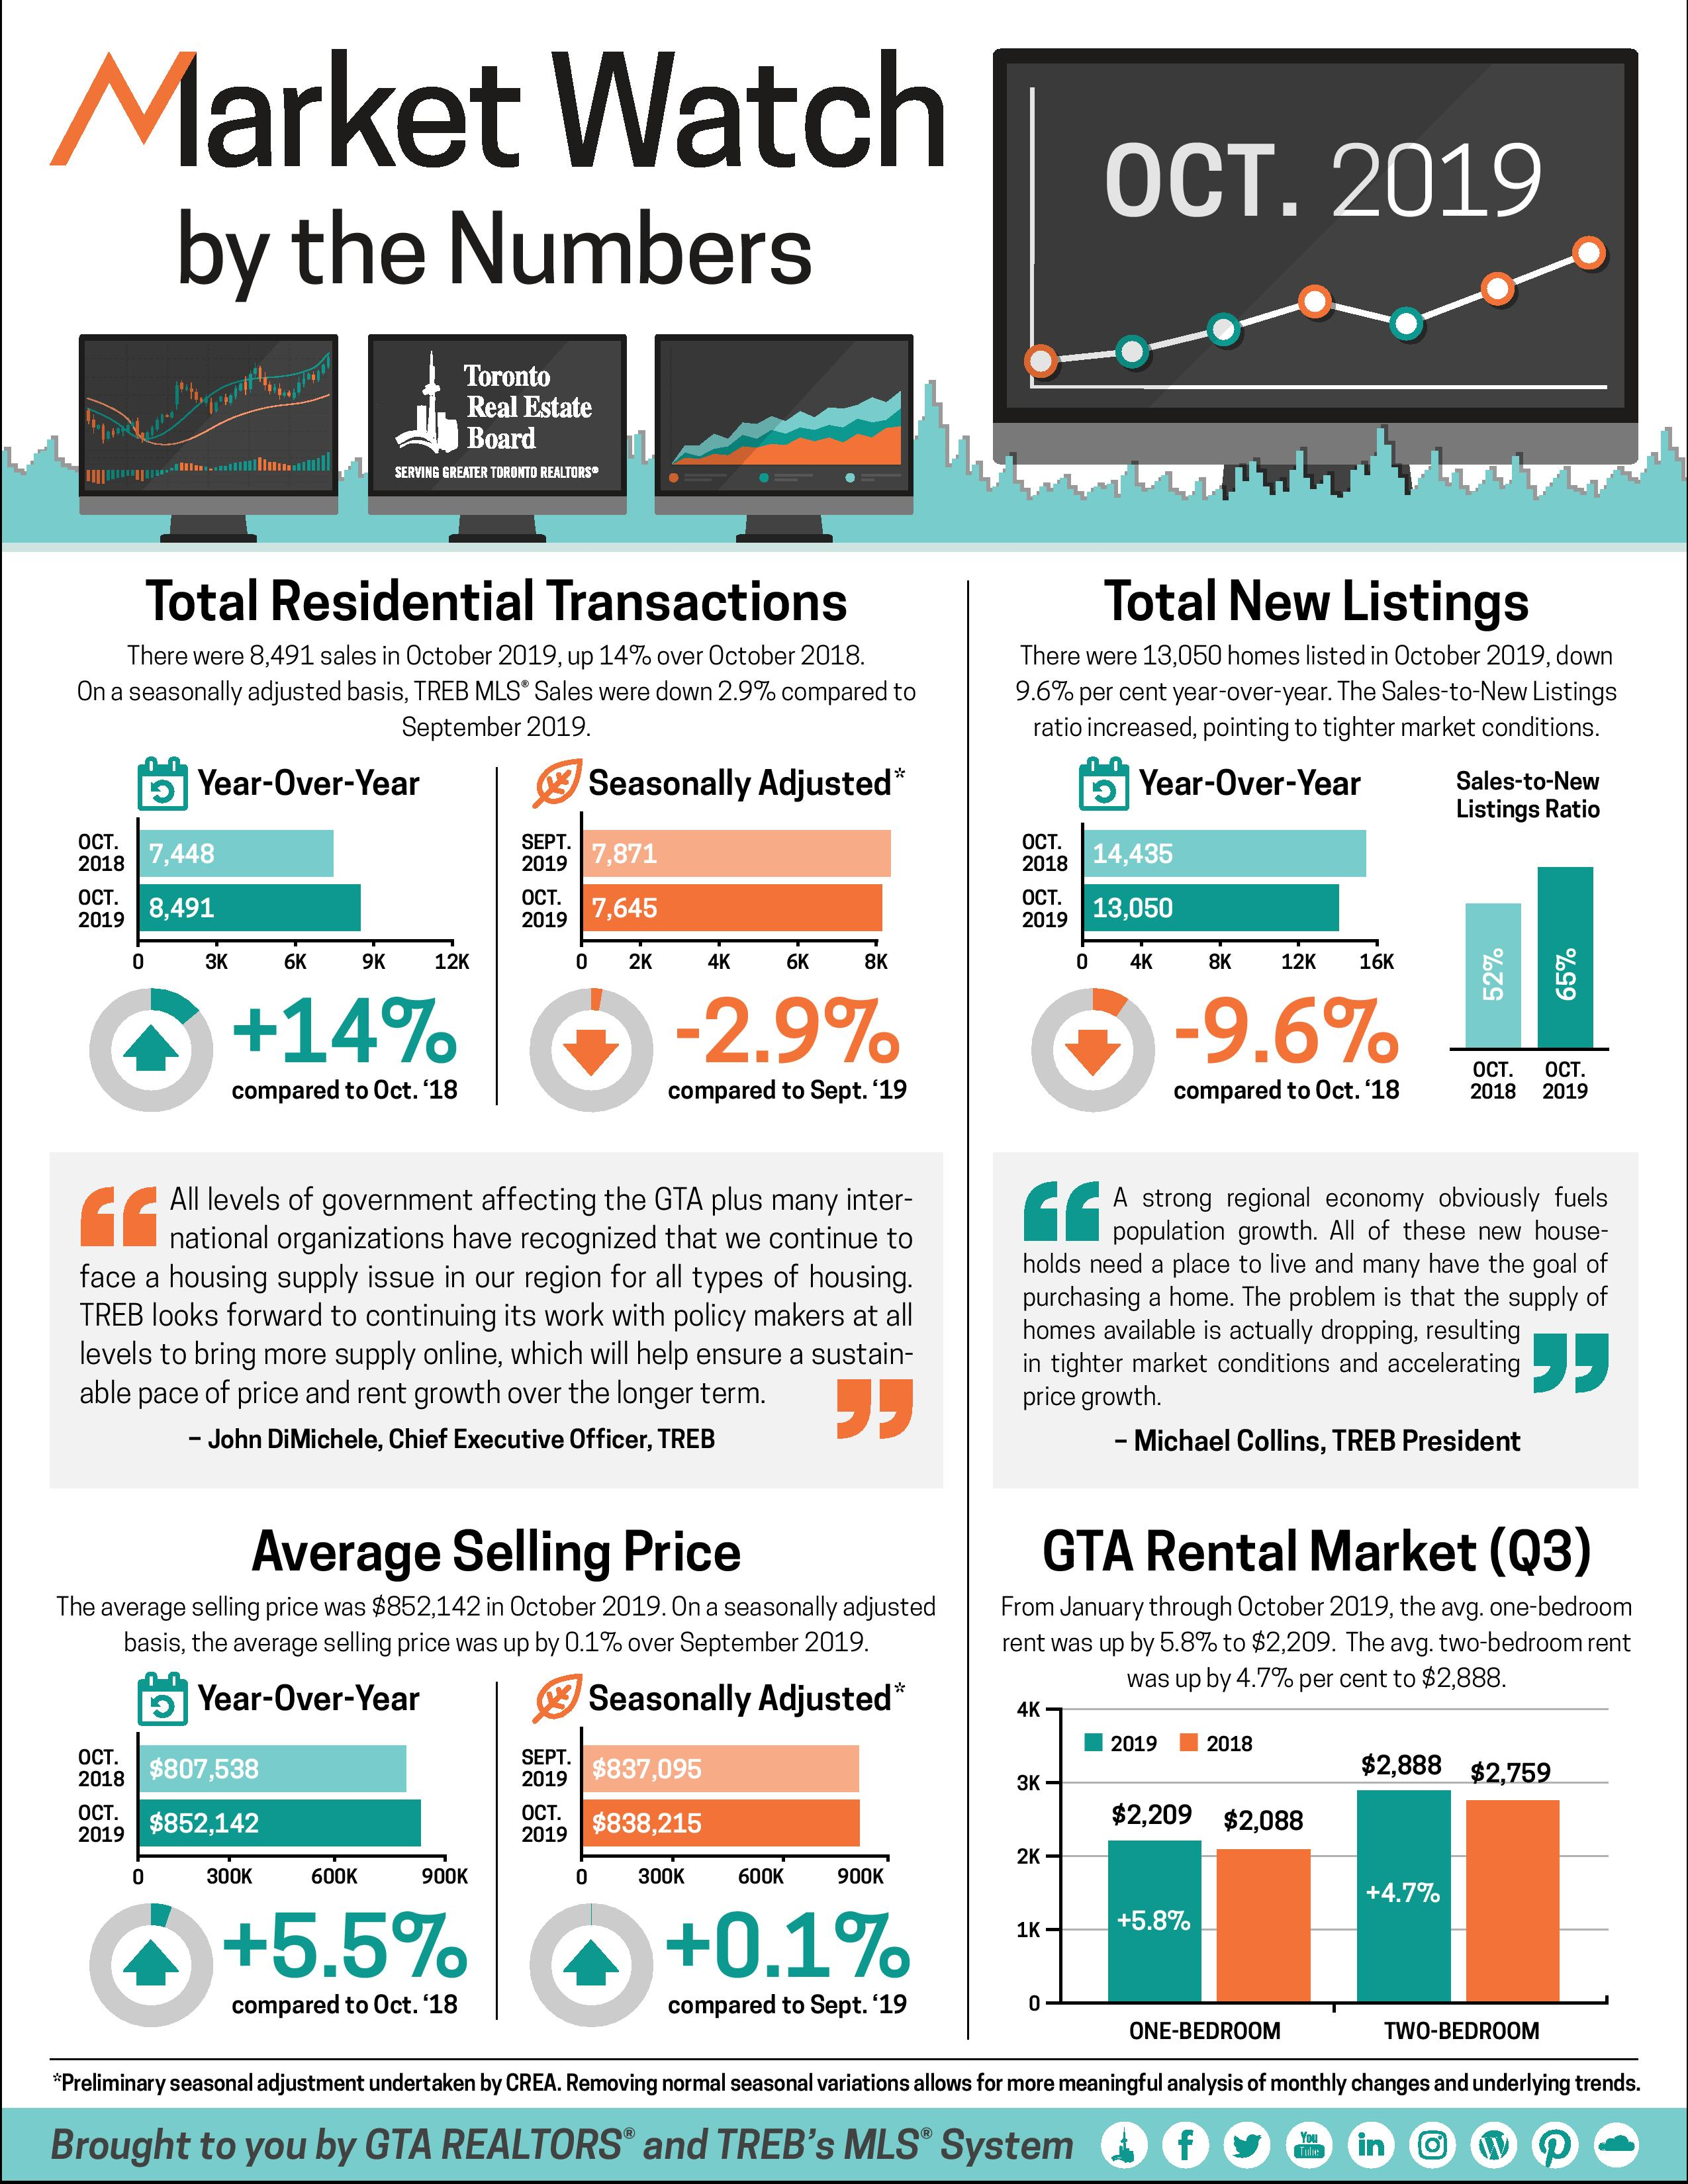 MarketWatch_infographic-201910-page-001.jpg